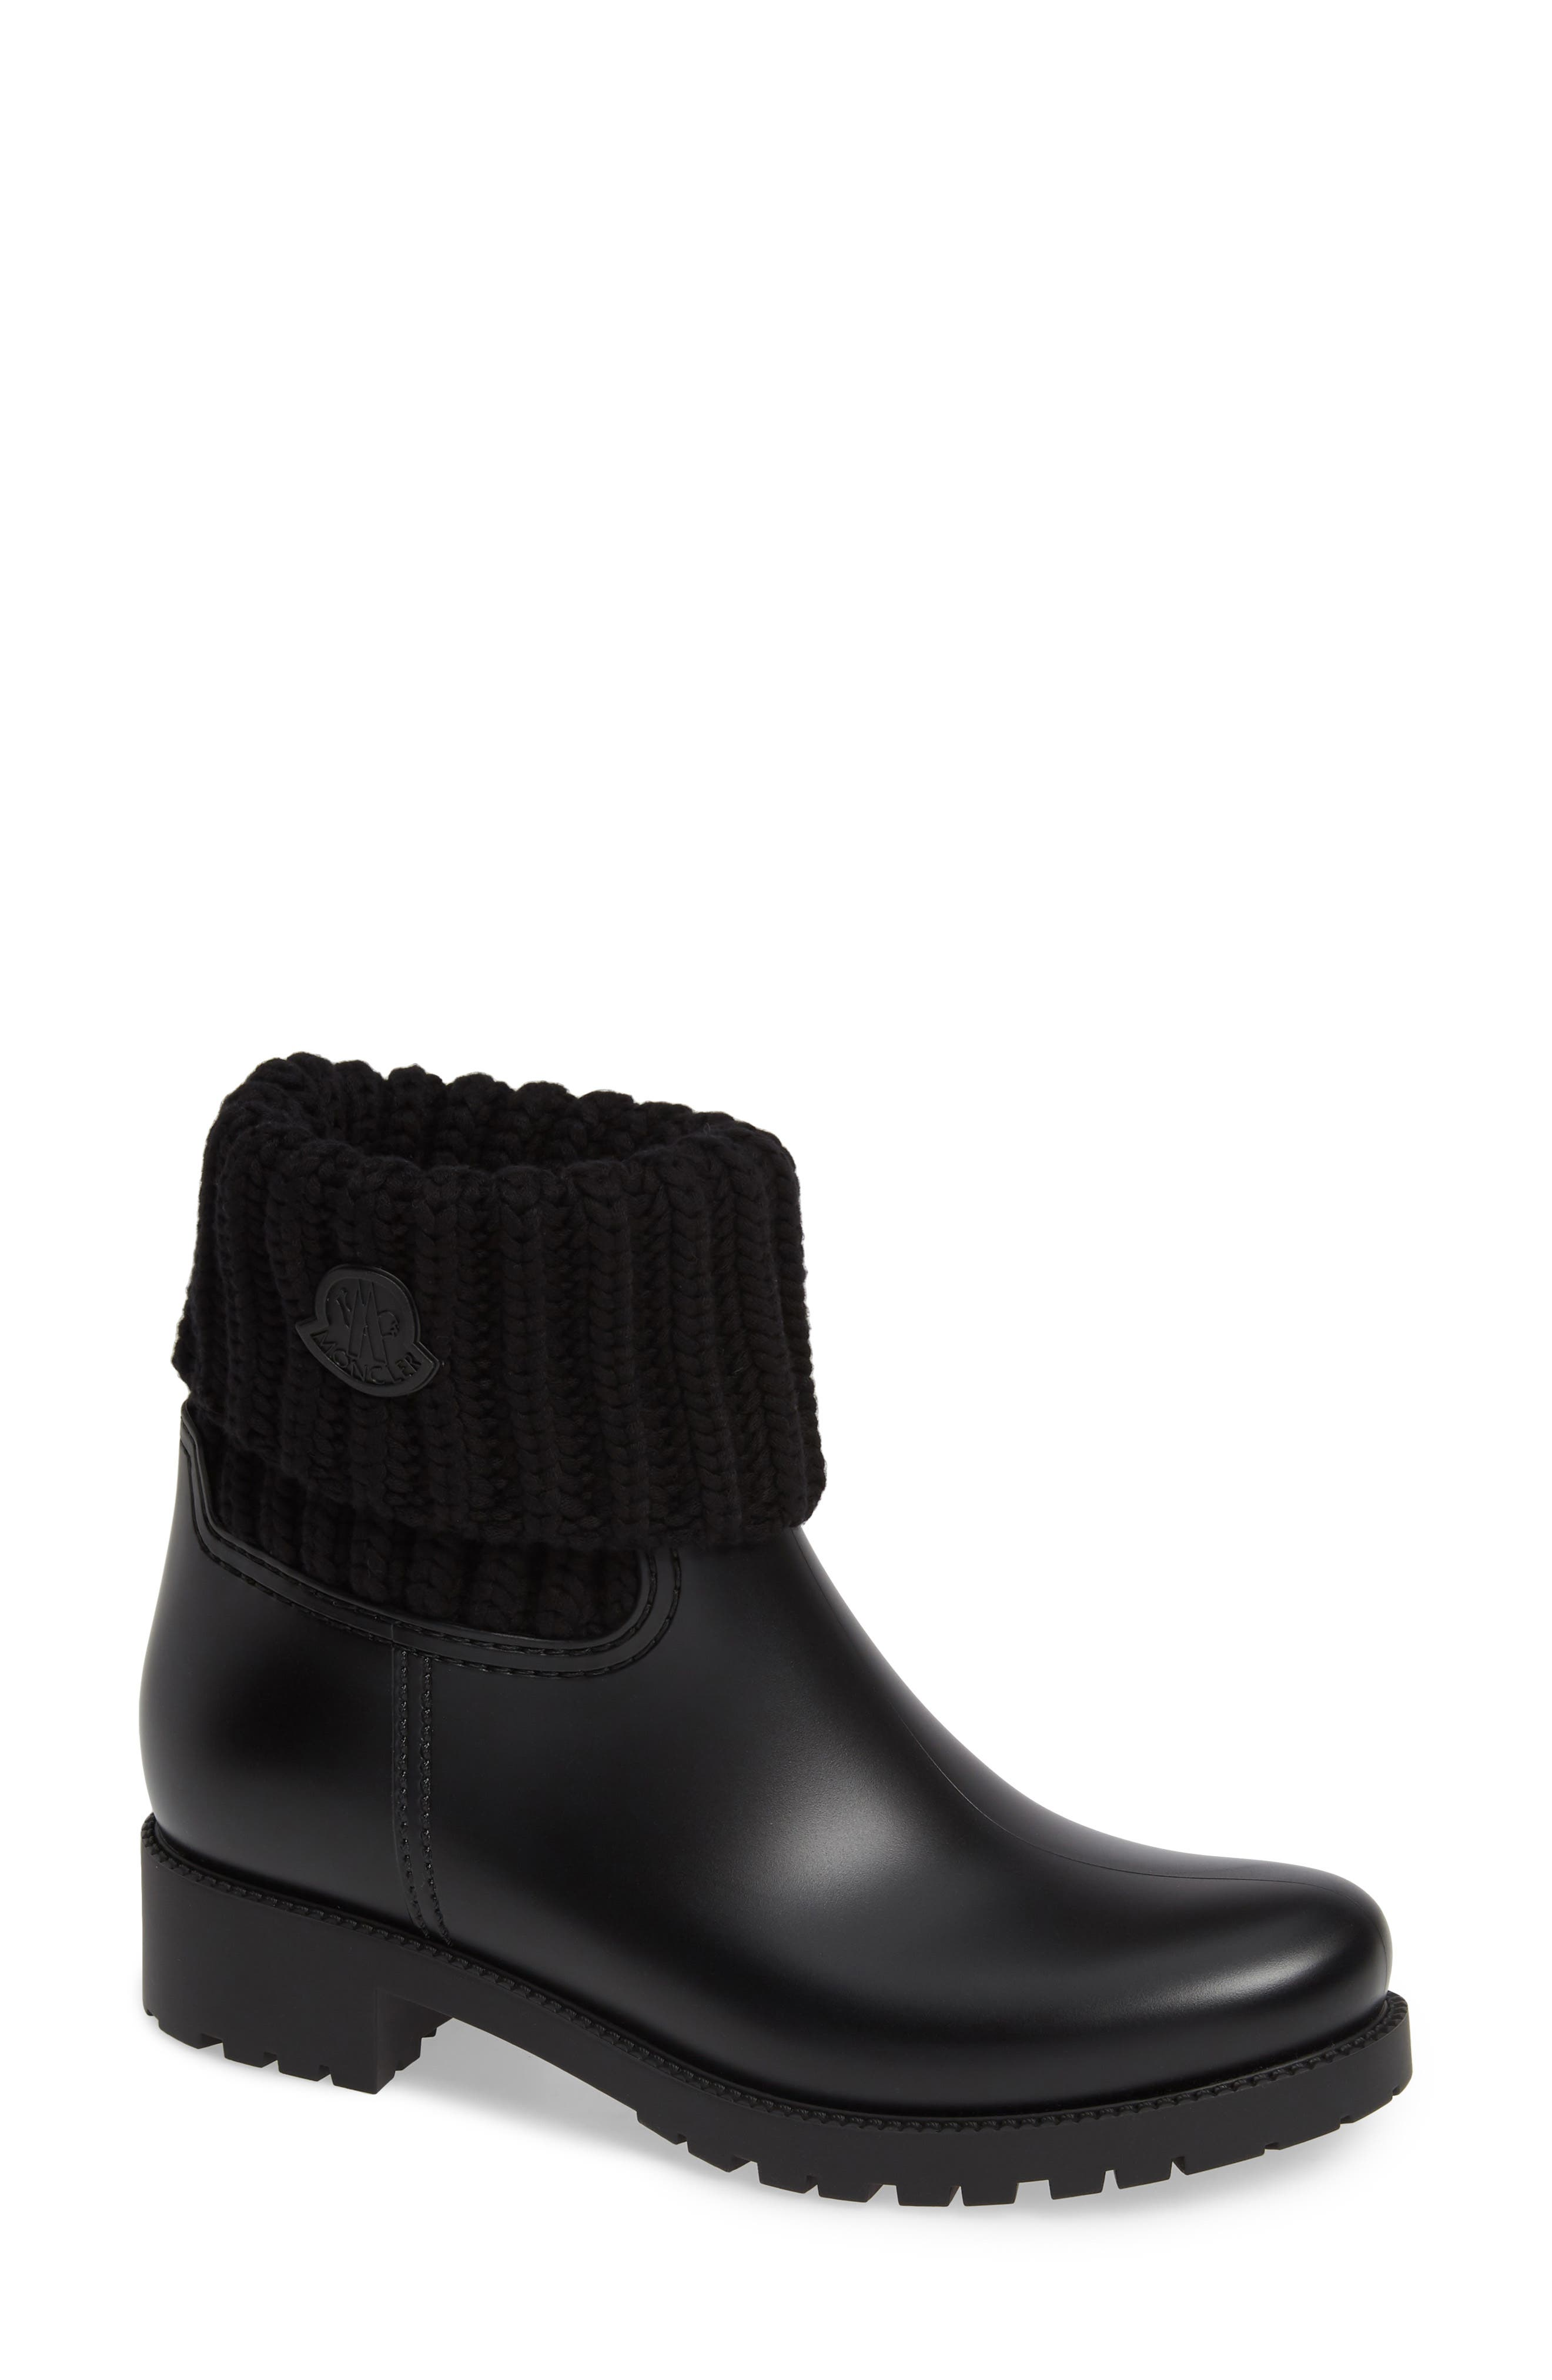 Moncler Ginette Stivale Knit Cuff Water Resistant Rain Boot, Black